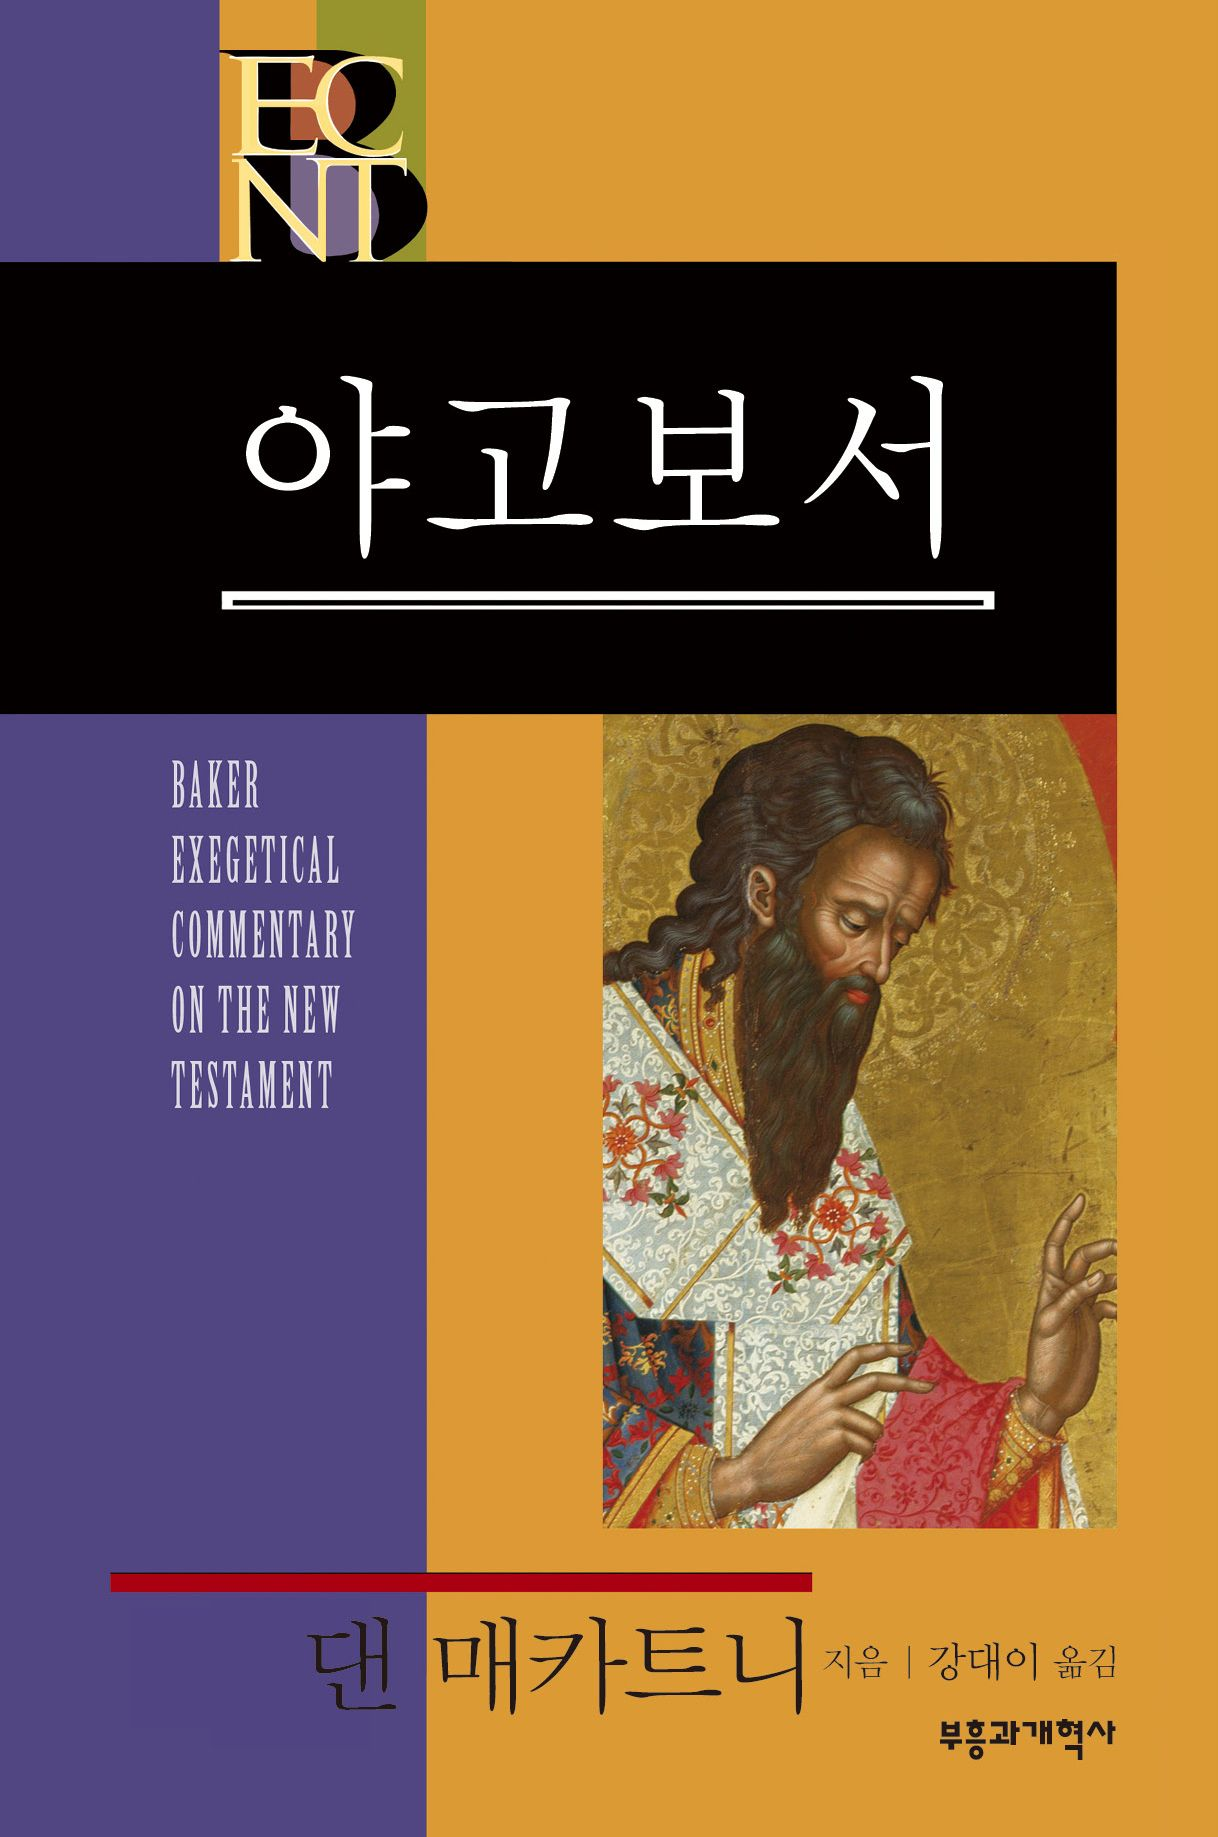 BECNT 야고보서(James [Baker Exegetical Commentary on the New Testament]), 댄 매카트니 지음, 강대이 옮김, 부흥과개혁사 / 표지 디자인, Book Cover Design, Revival&Reformation